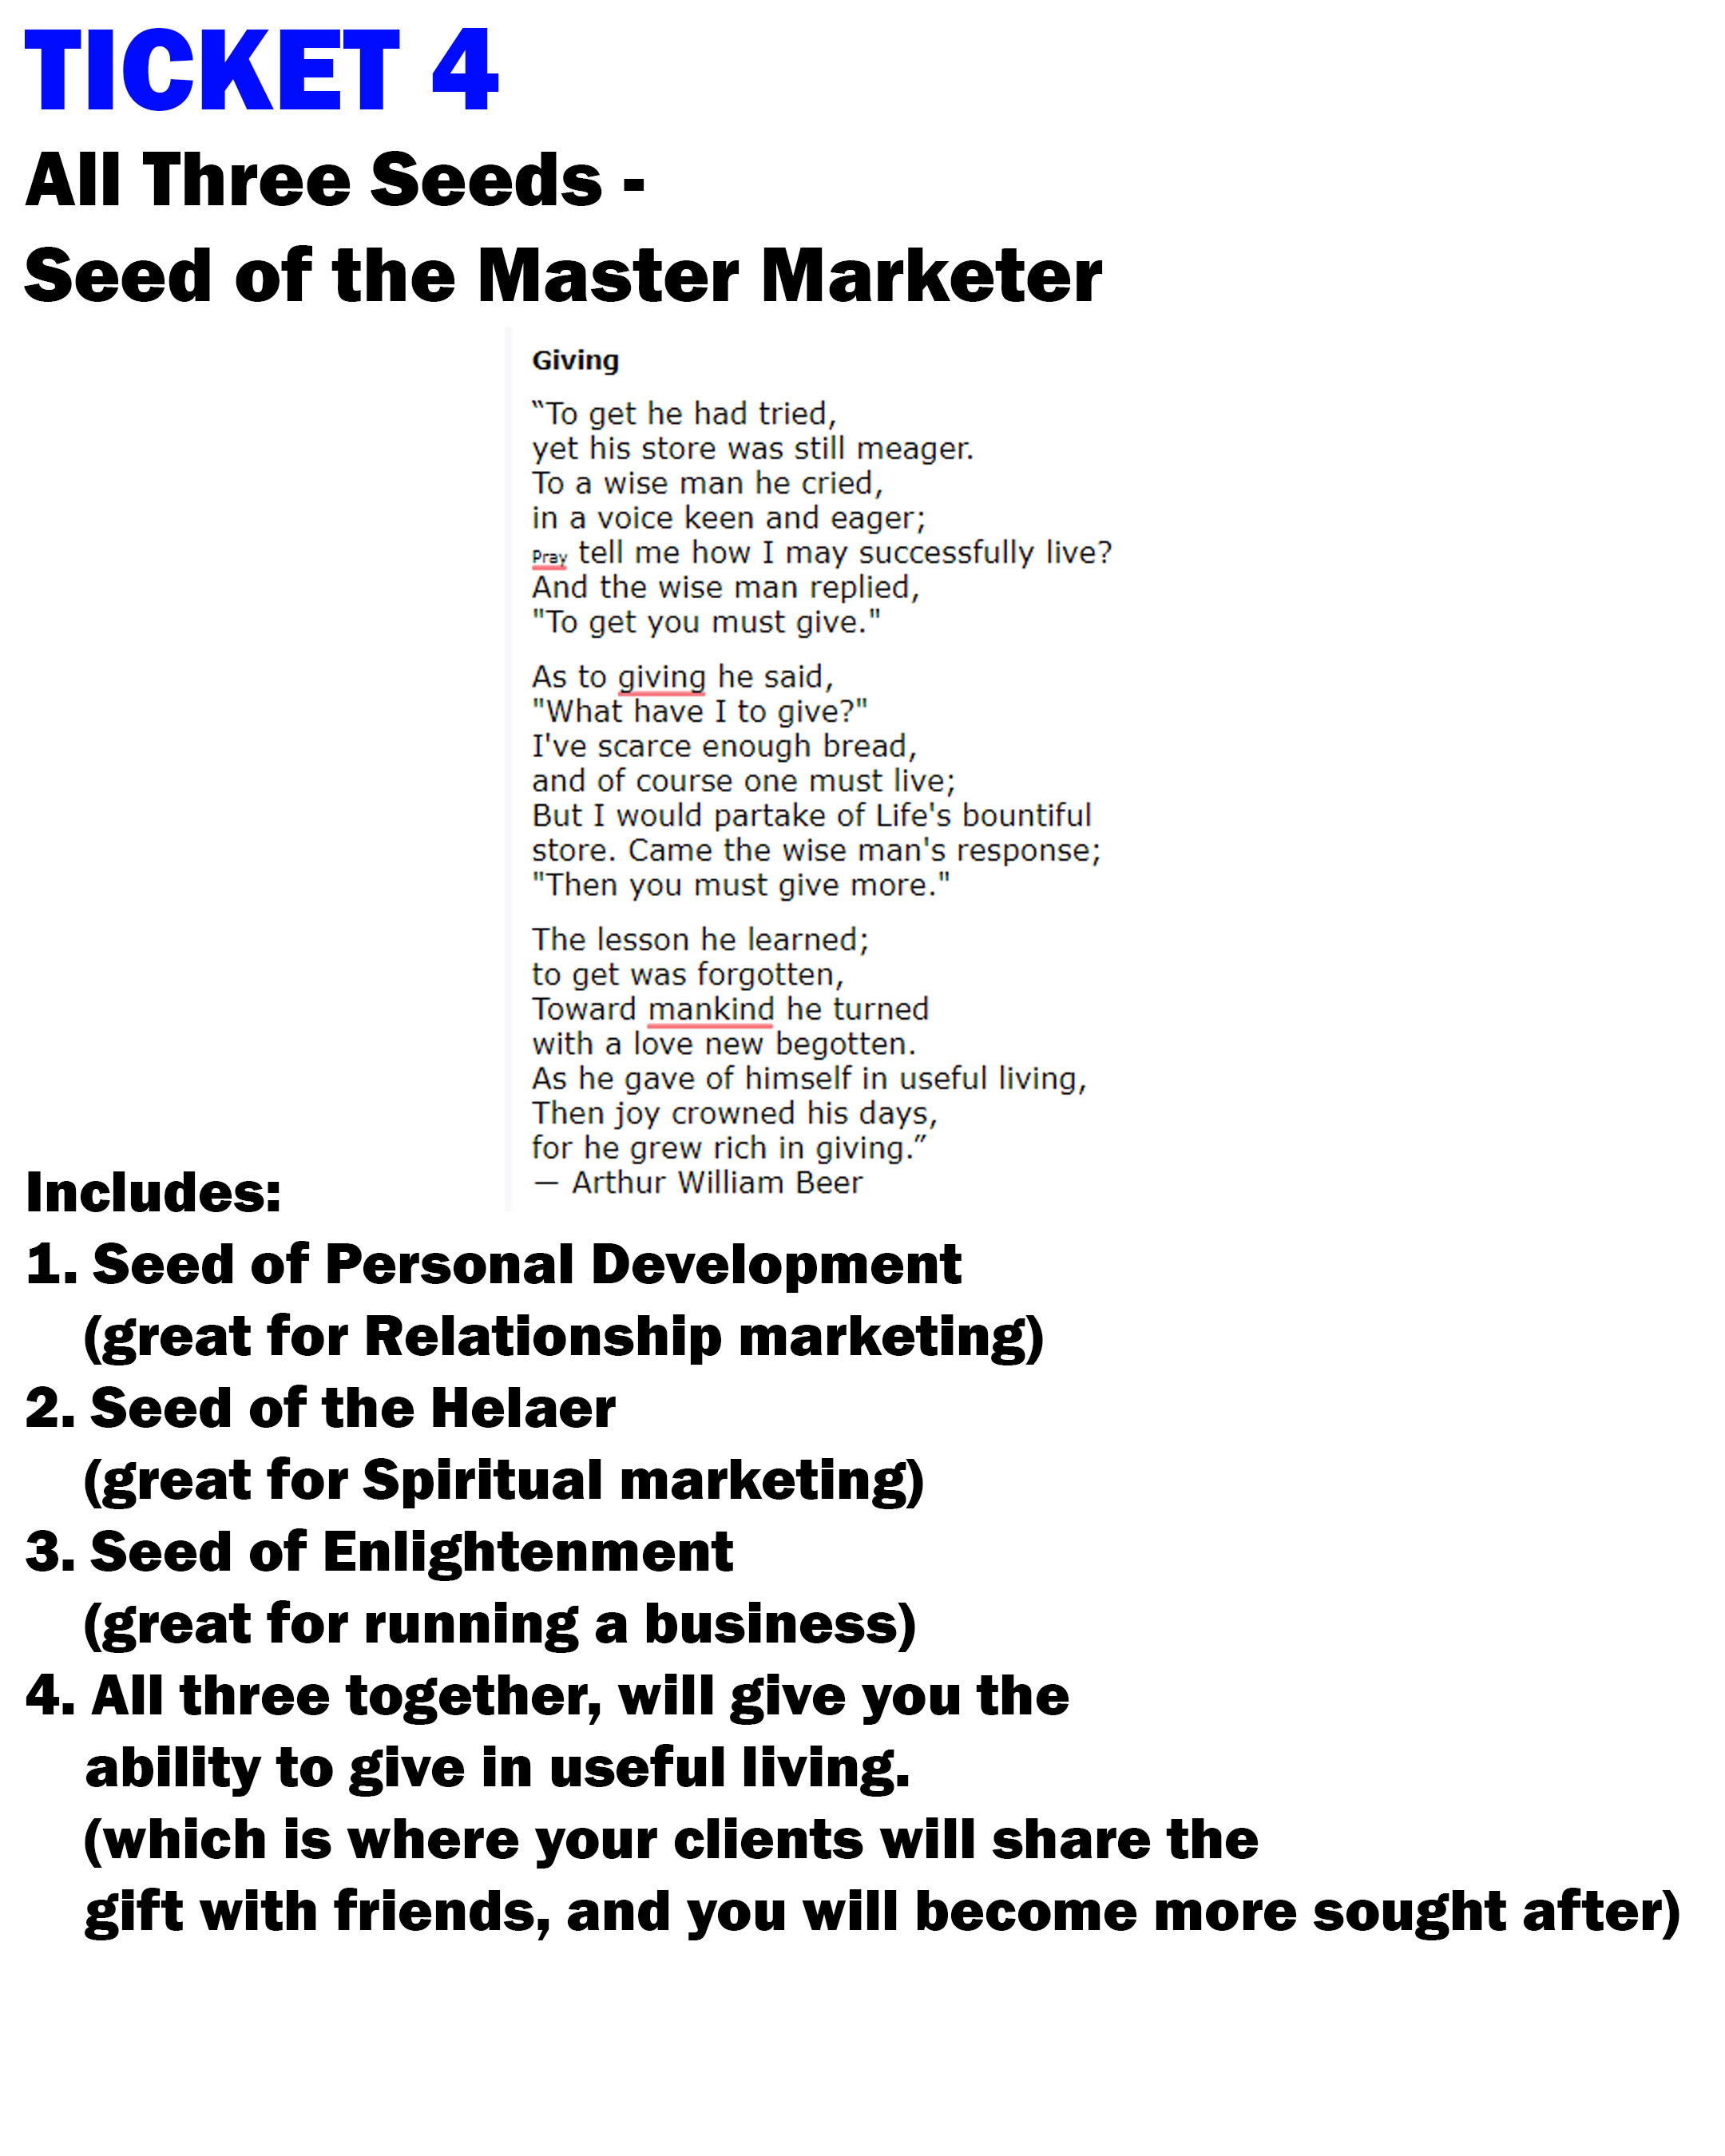 SEED4 Ticket 4 Seed of marketing master